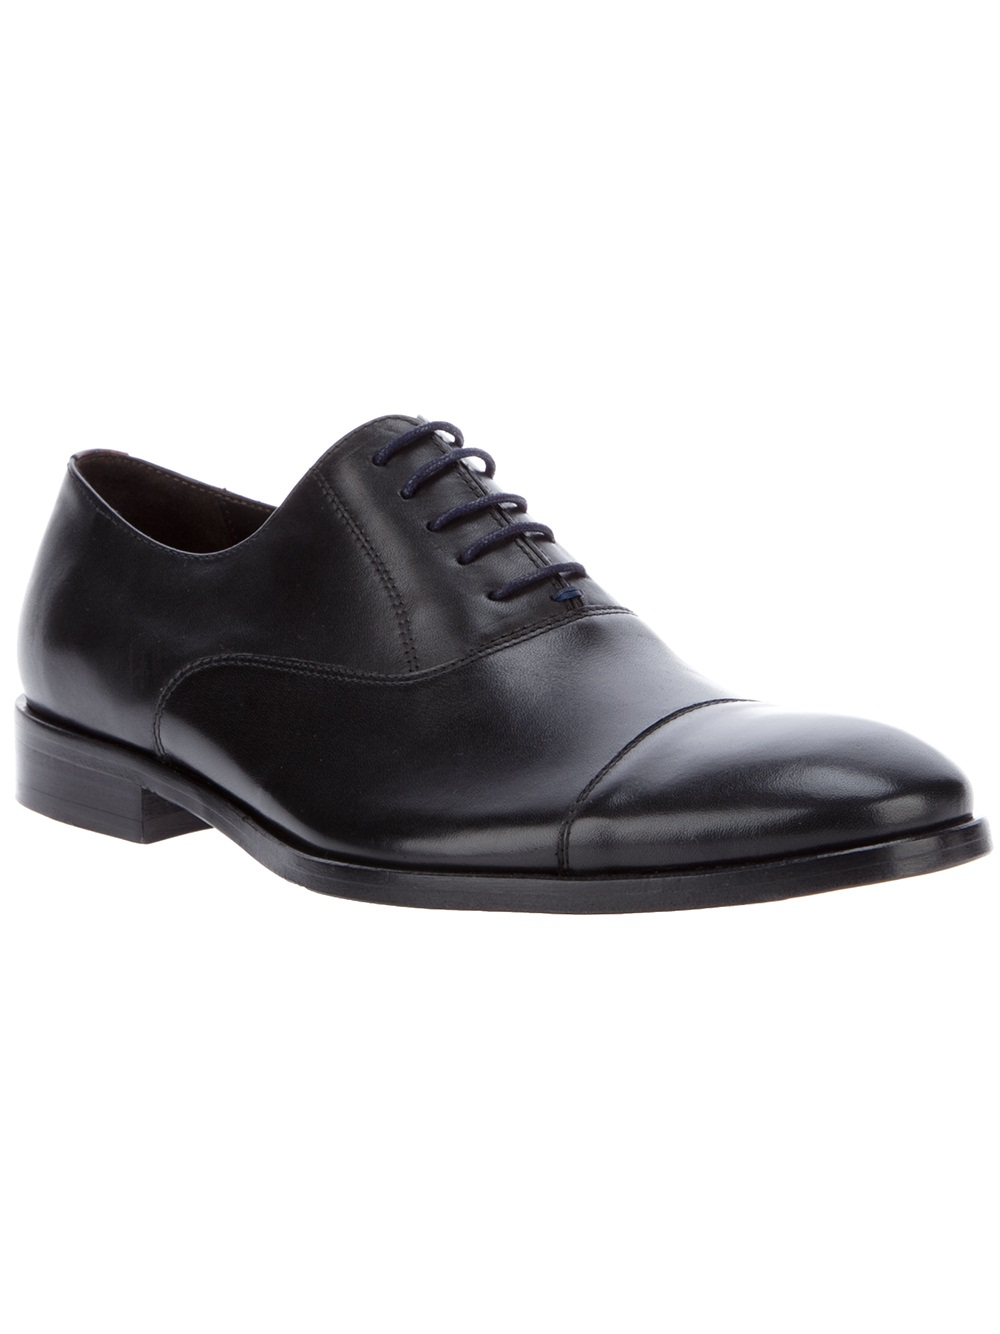 paul smith lace up shoe in black for lyst